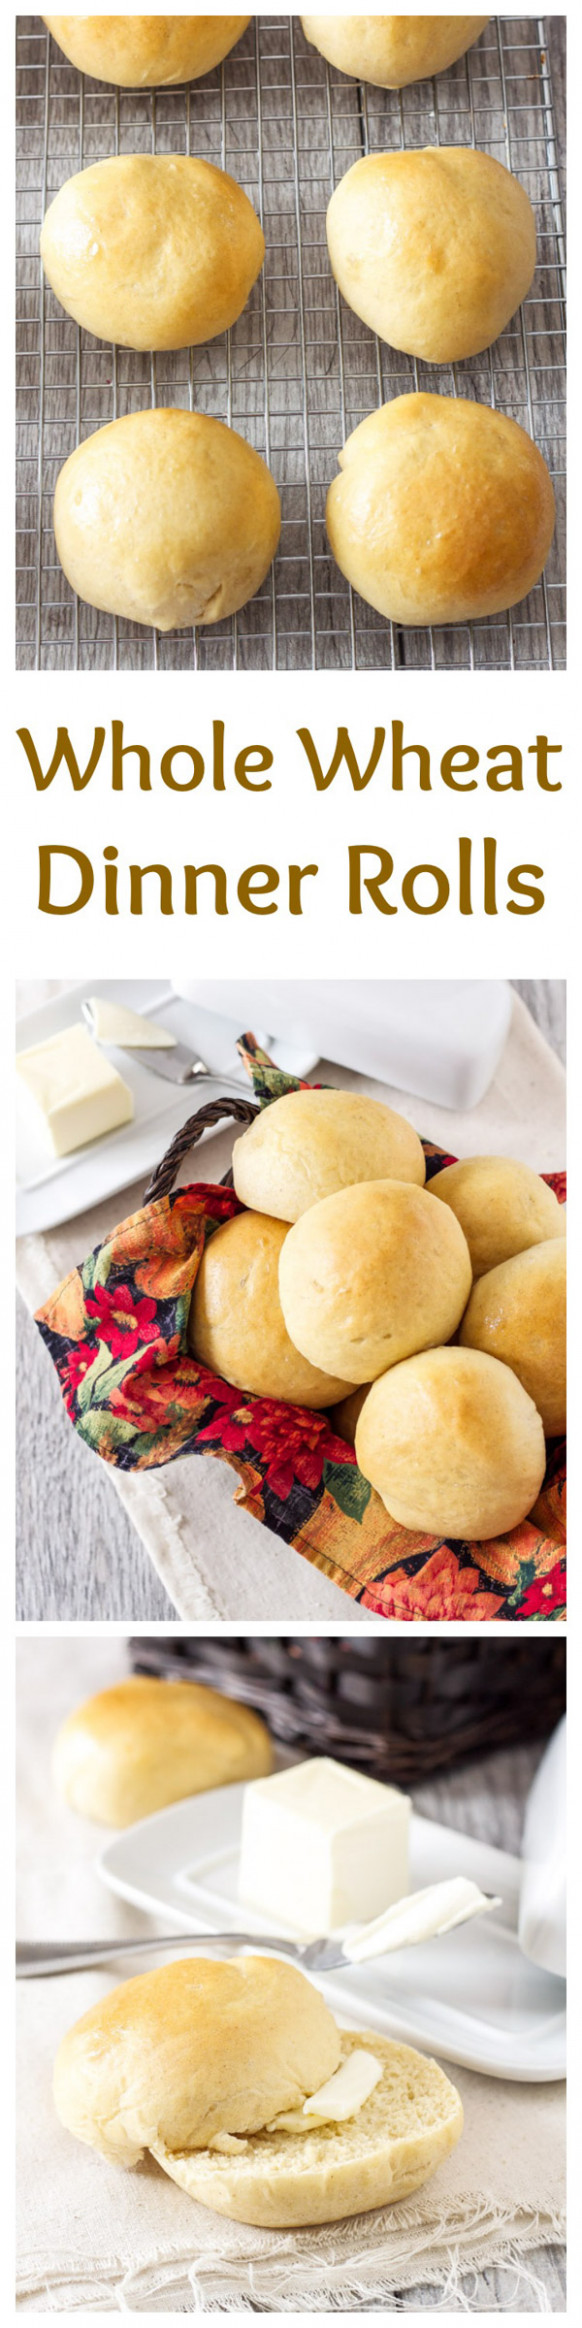 Whole Wheat Dinner Rolls - dinner roll recipes